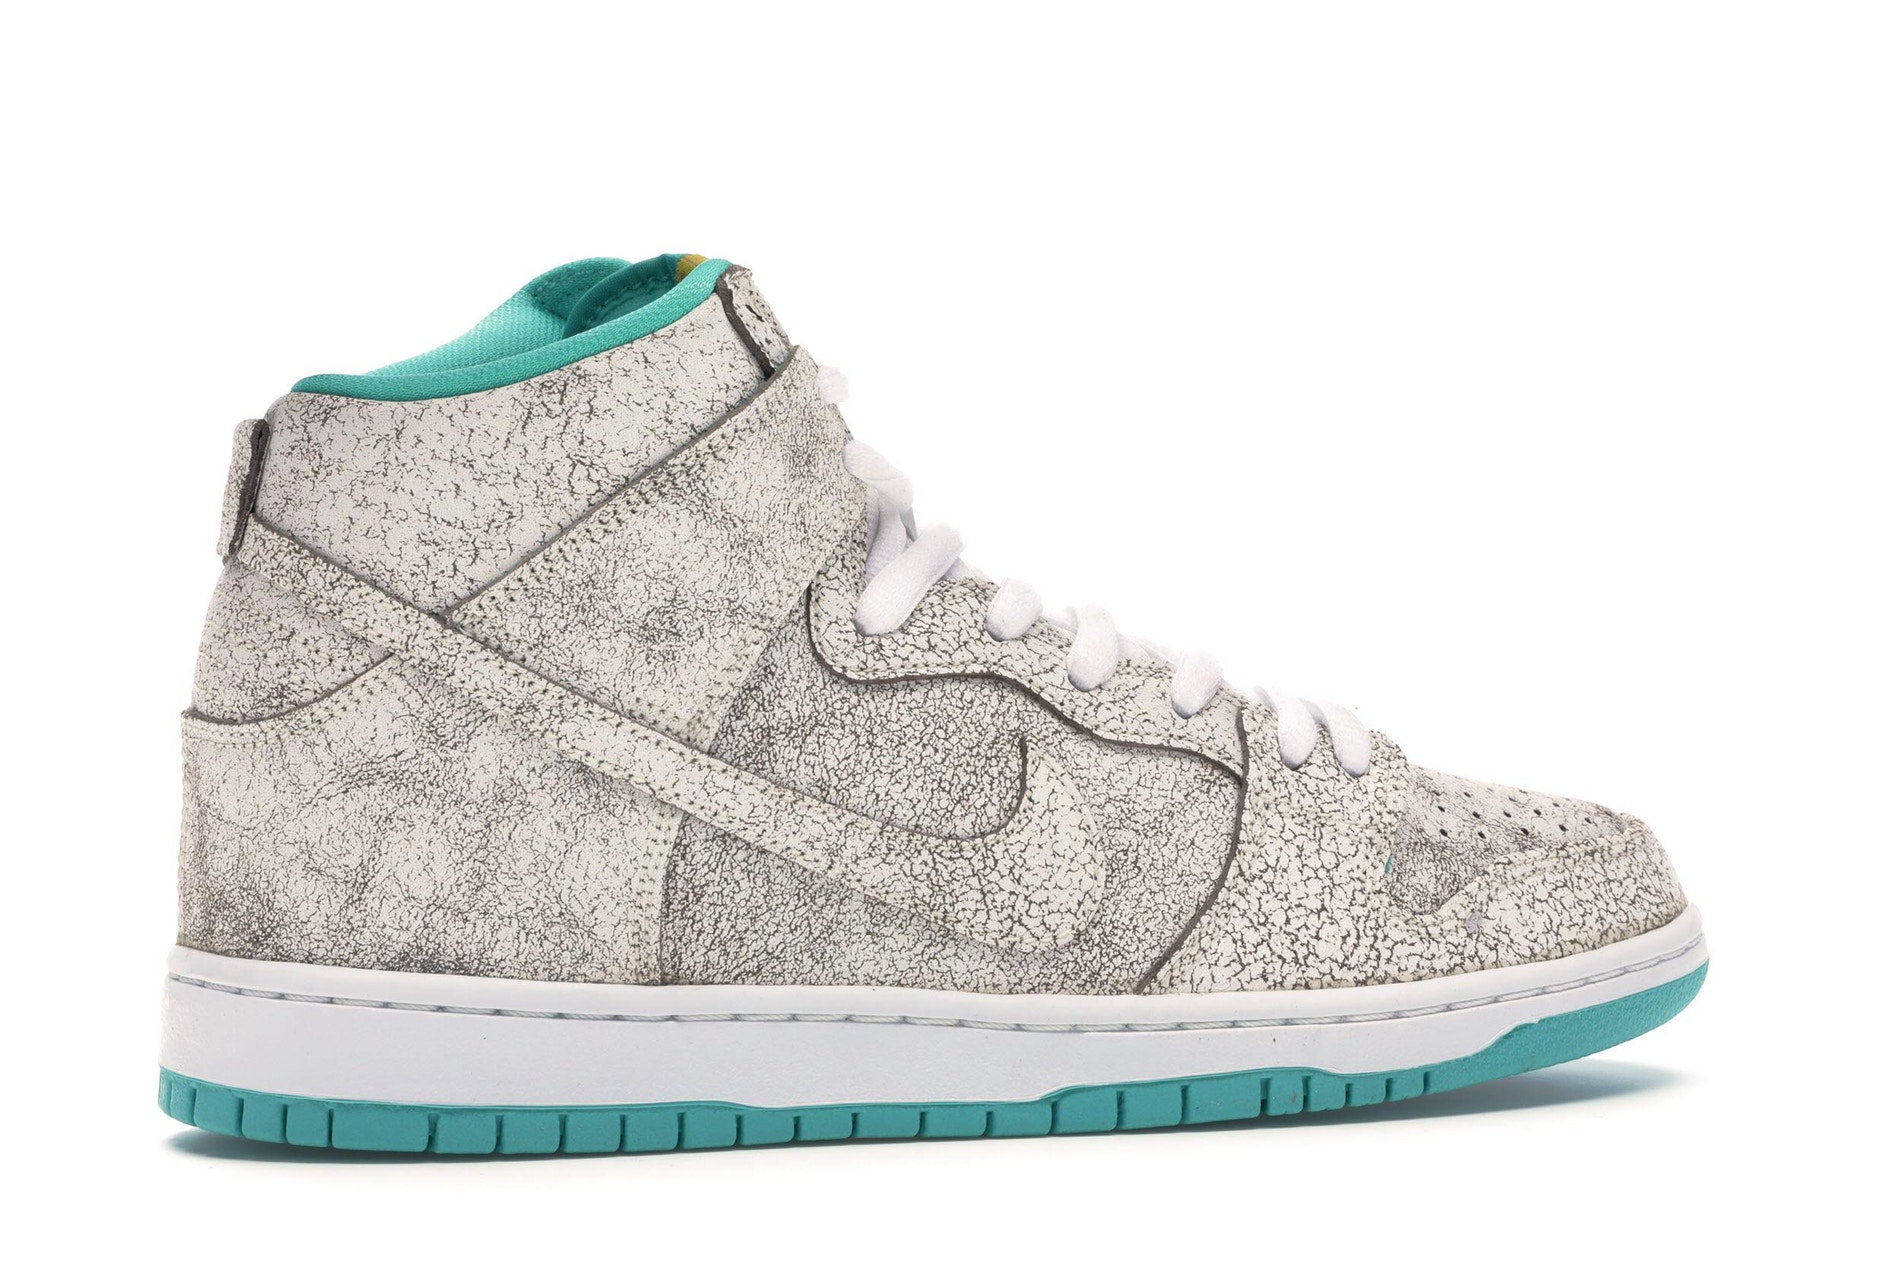 Nike Dunk SB High Flamingo